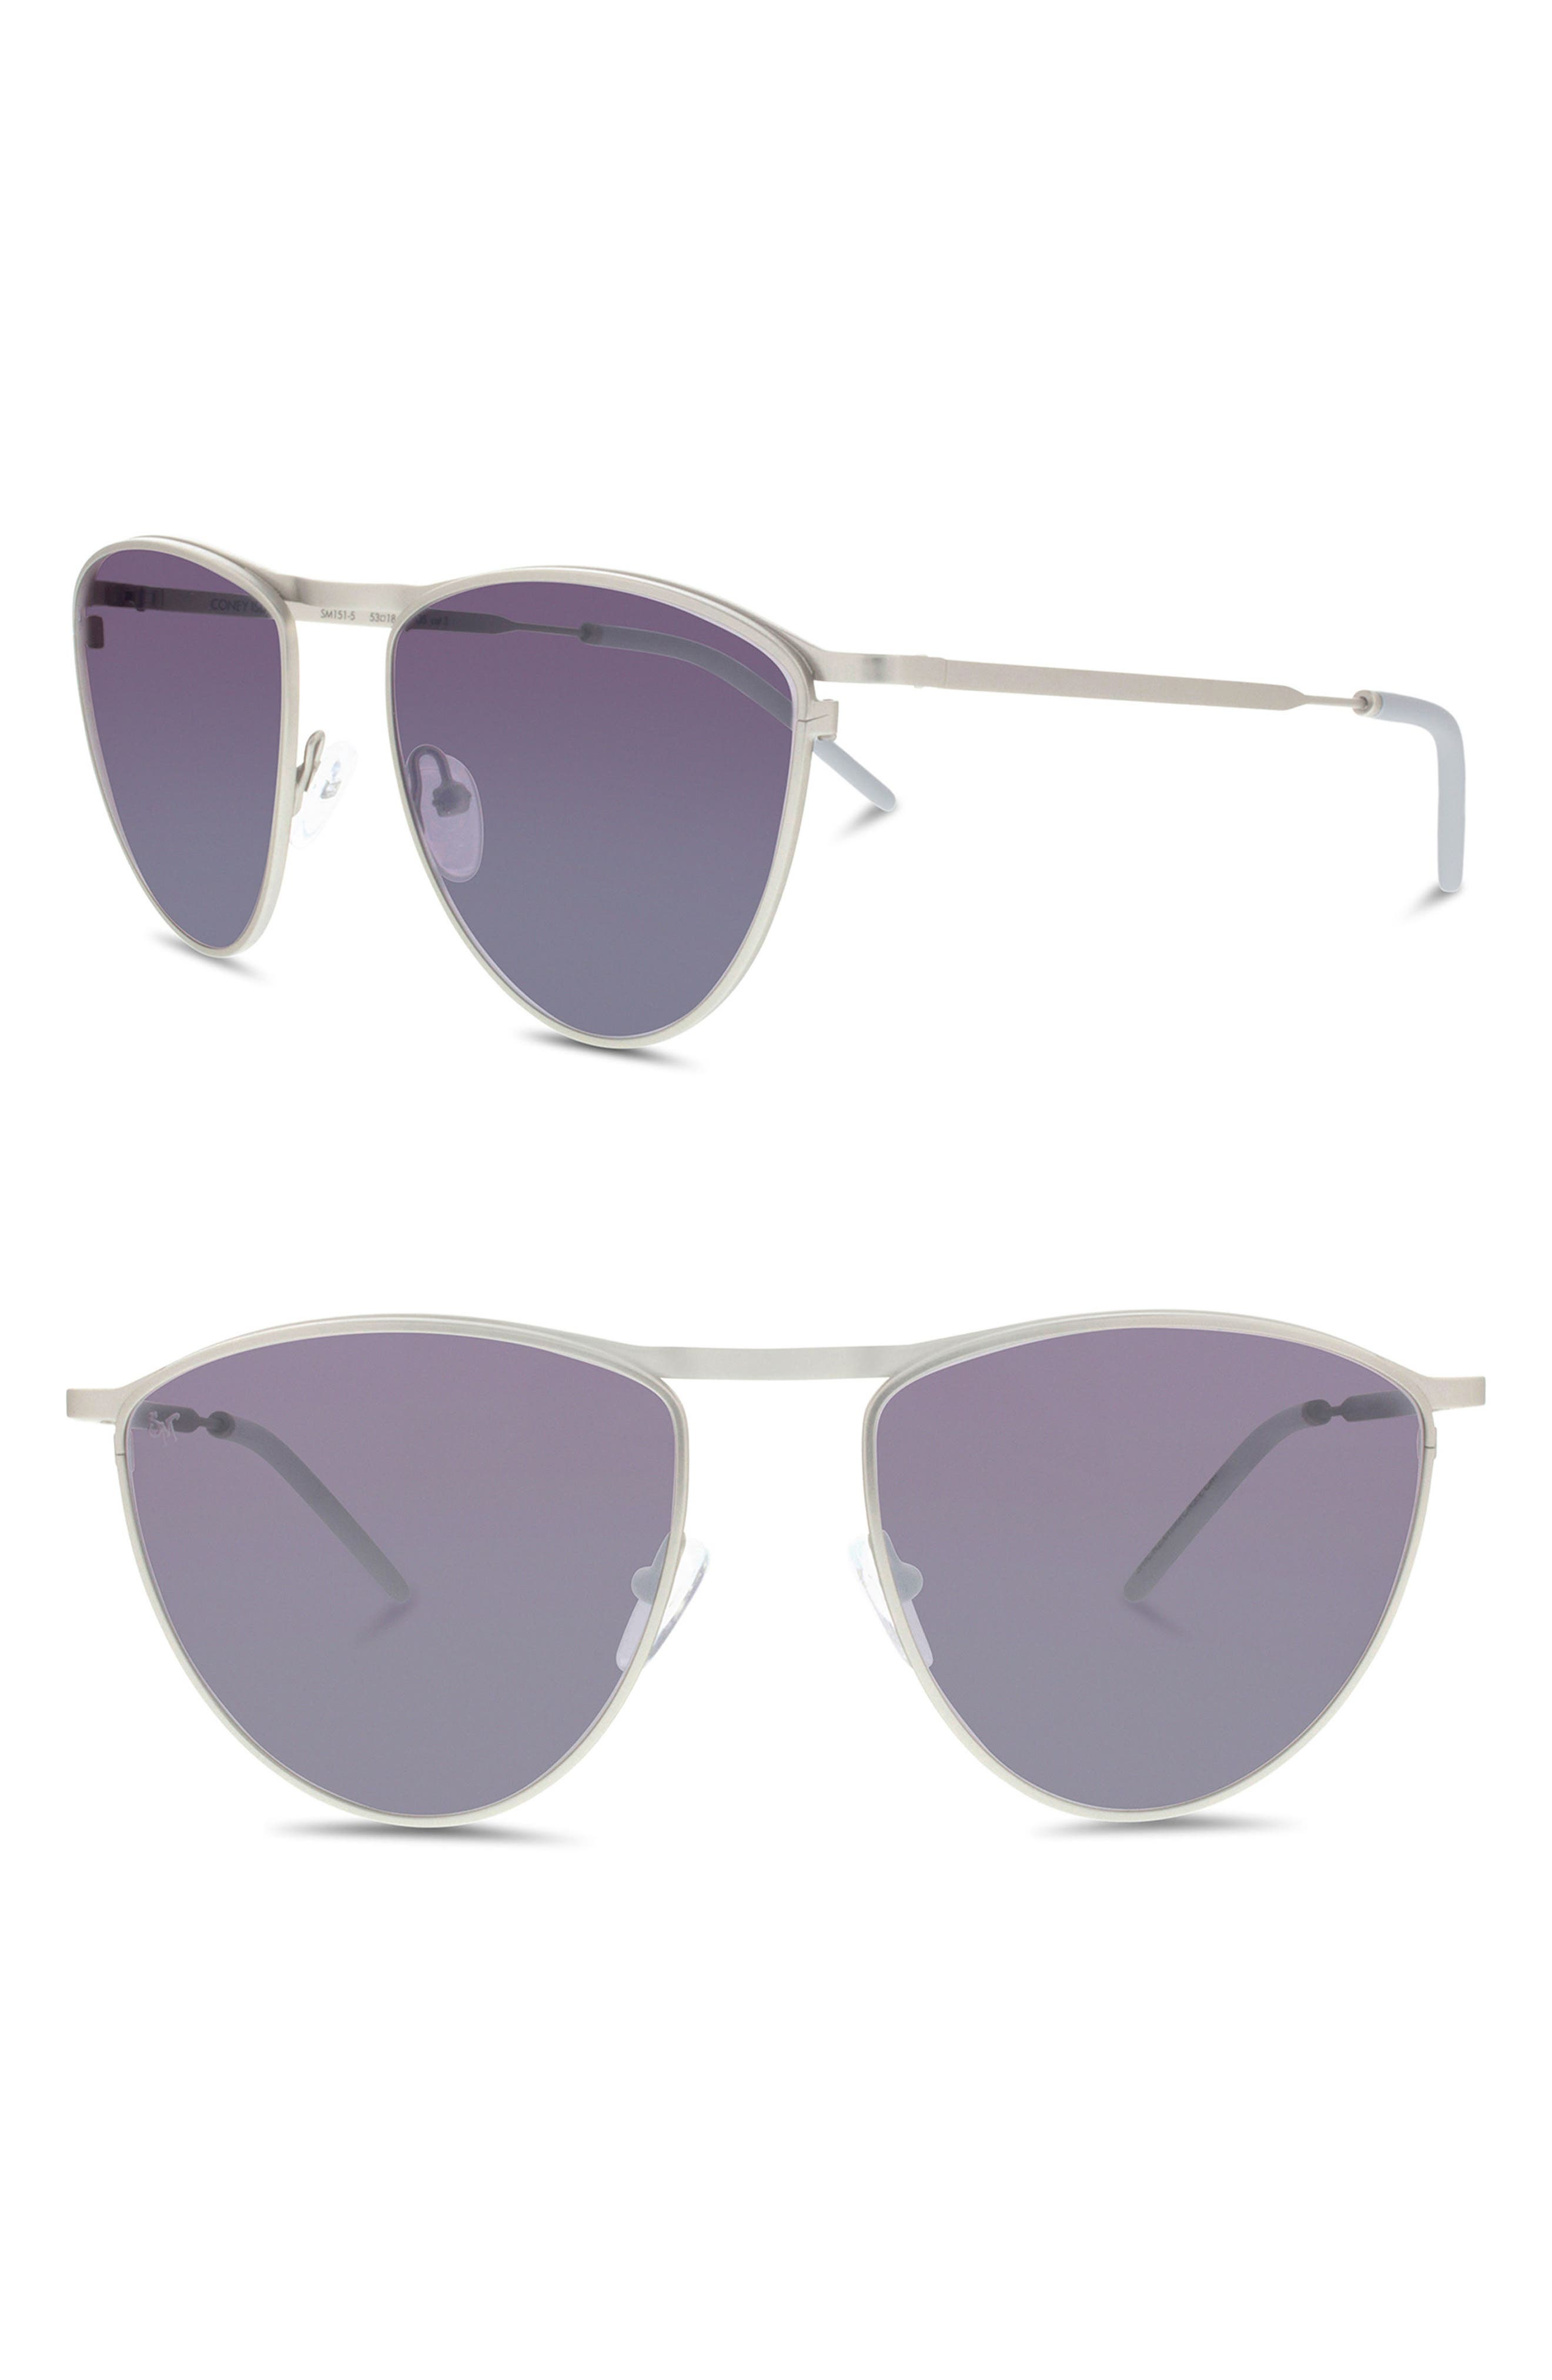 Coney Island 53mm Round Sunglasses,                             Main thumbnail 1, color,                             SILVER